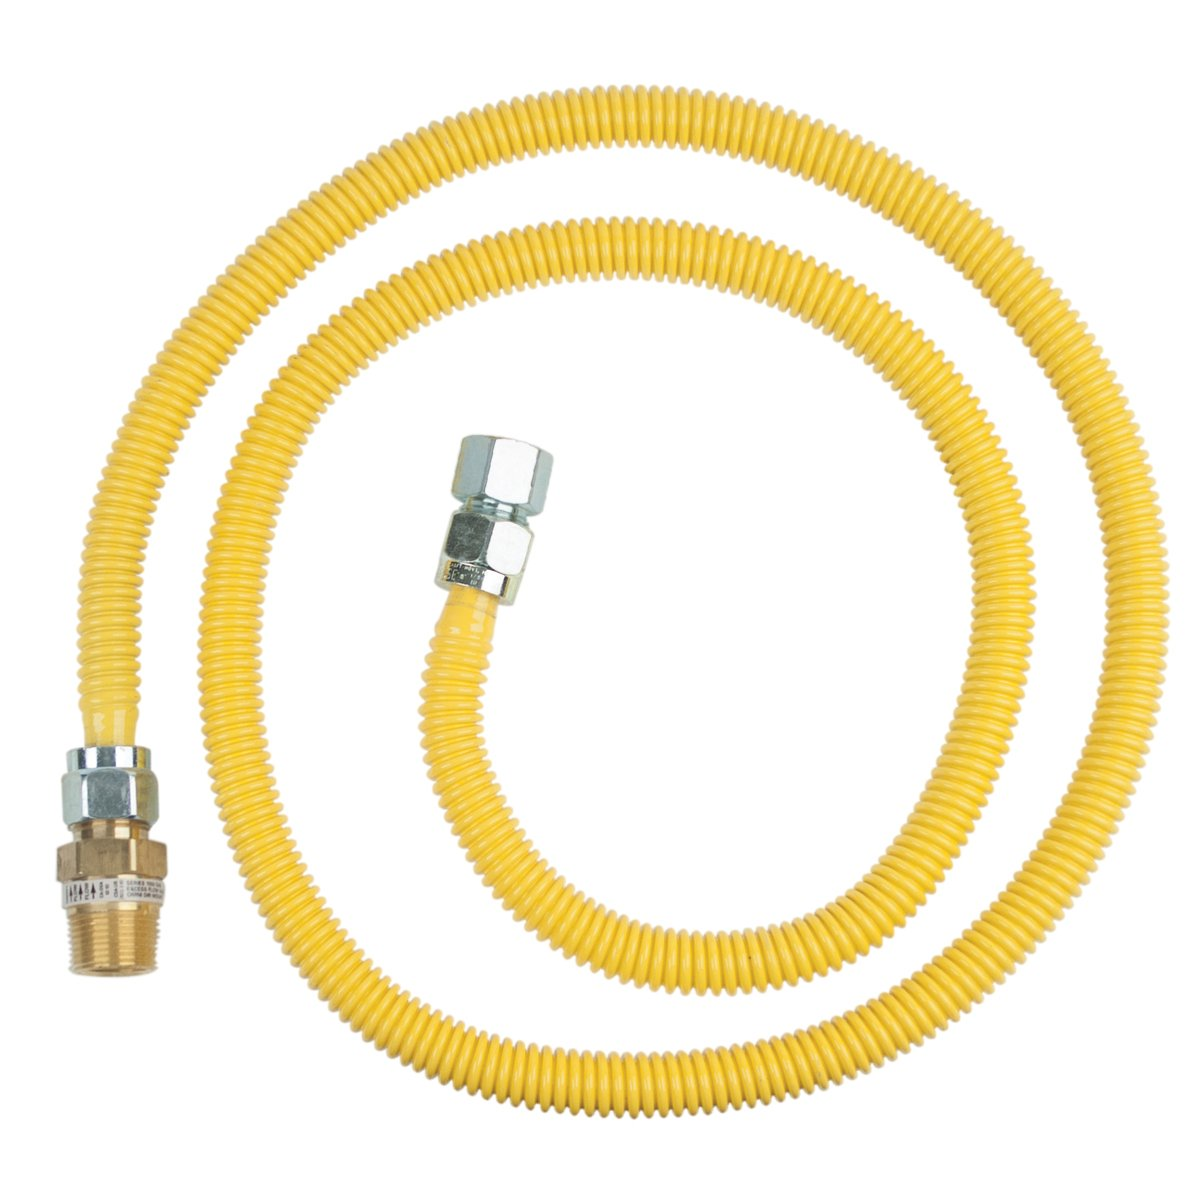 Brasscraft Cssc12R72 P Safety Plus Gas Appliance Connector With 5/8'' Od Efv And 3/4'' Mip x 3/4'' Fip x 72''